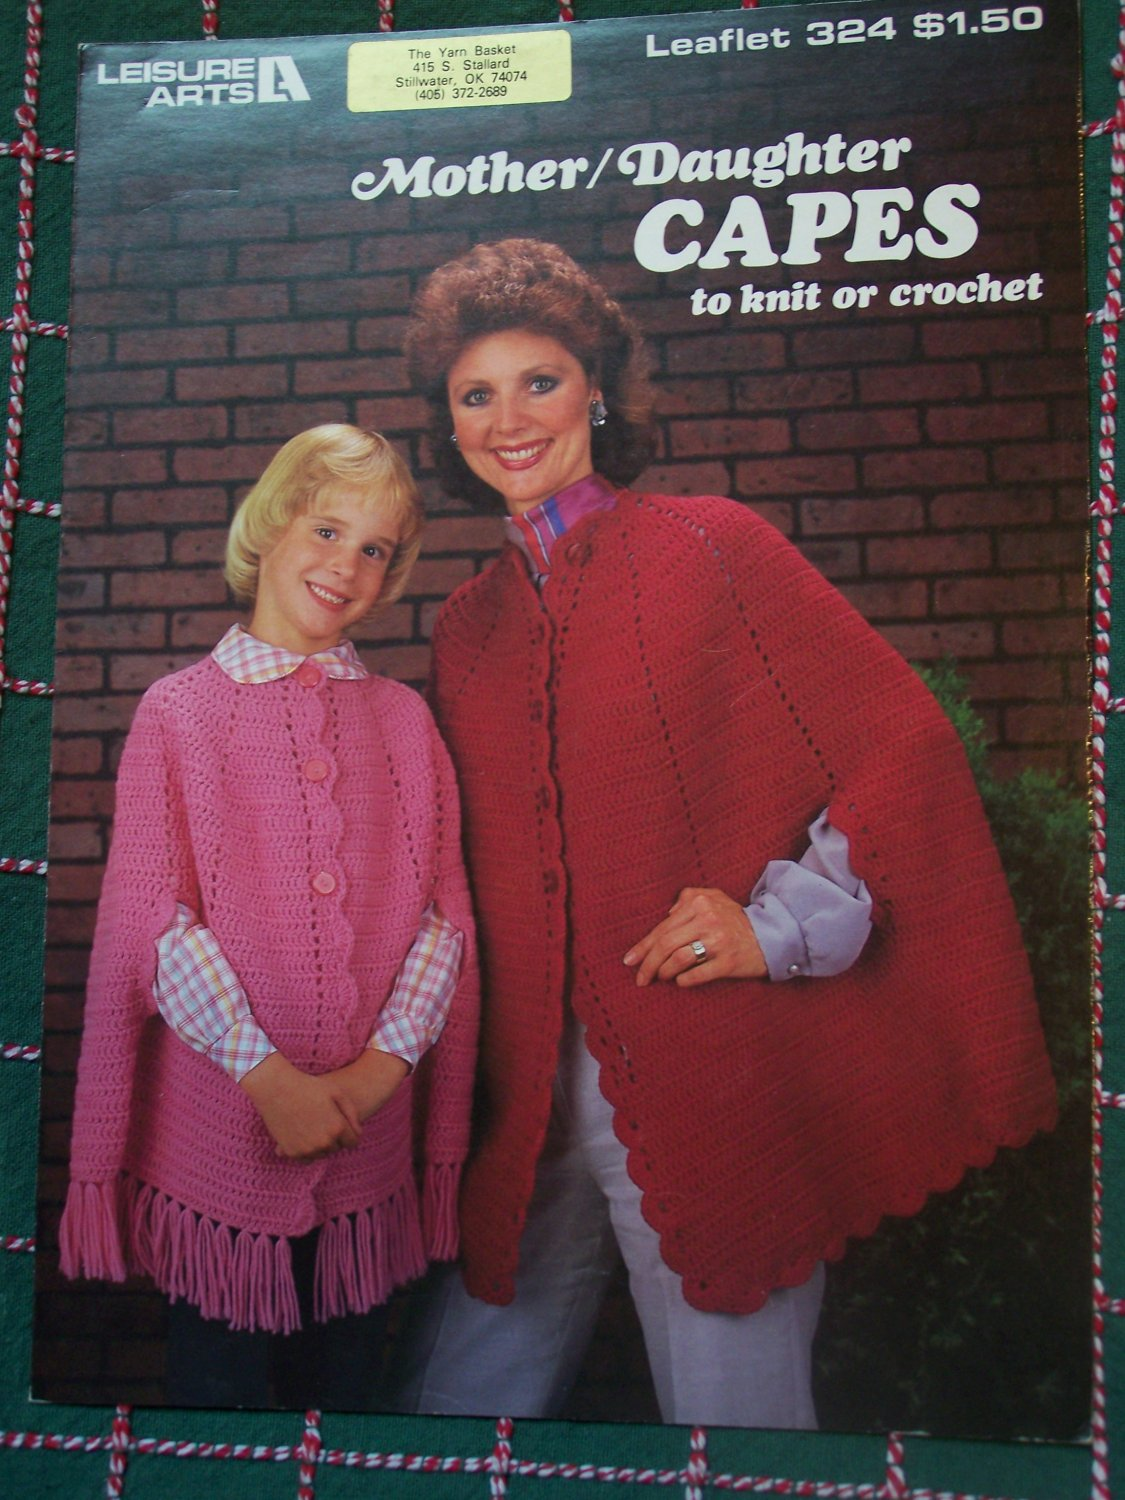 Vintage Knit & Crochet Patterns Mother Daughter Capes 324